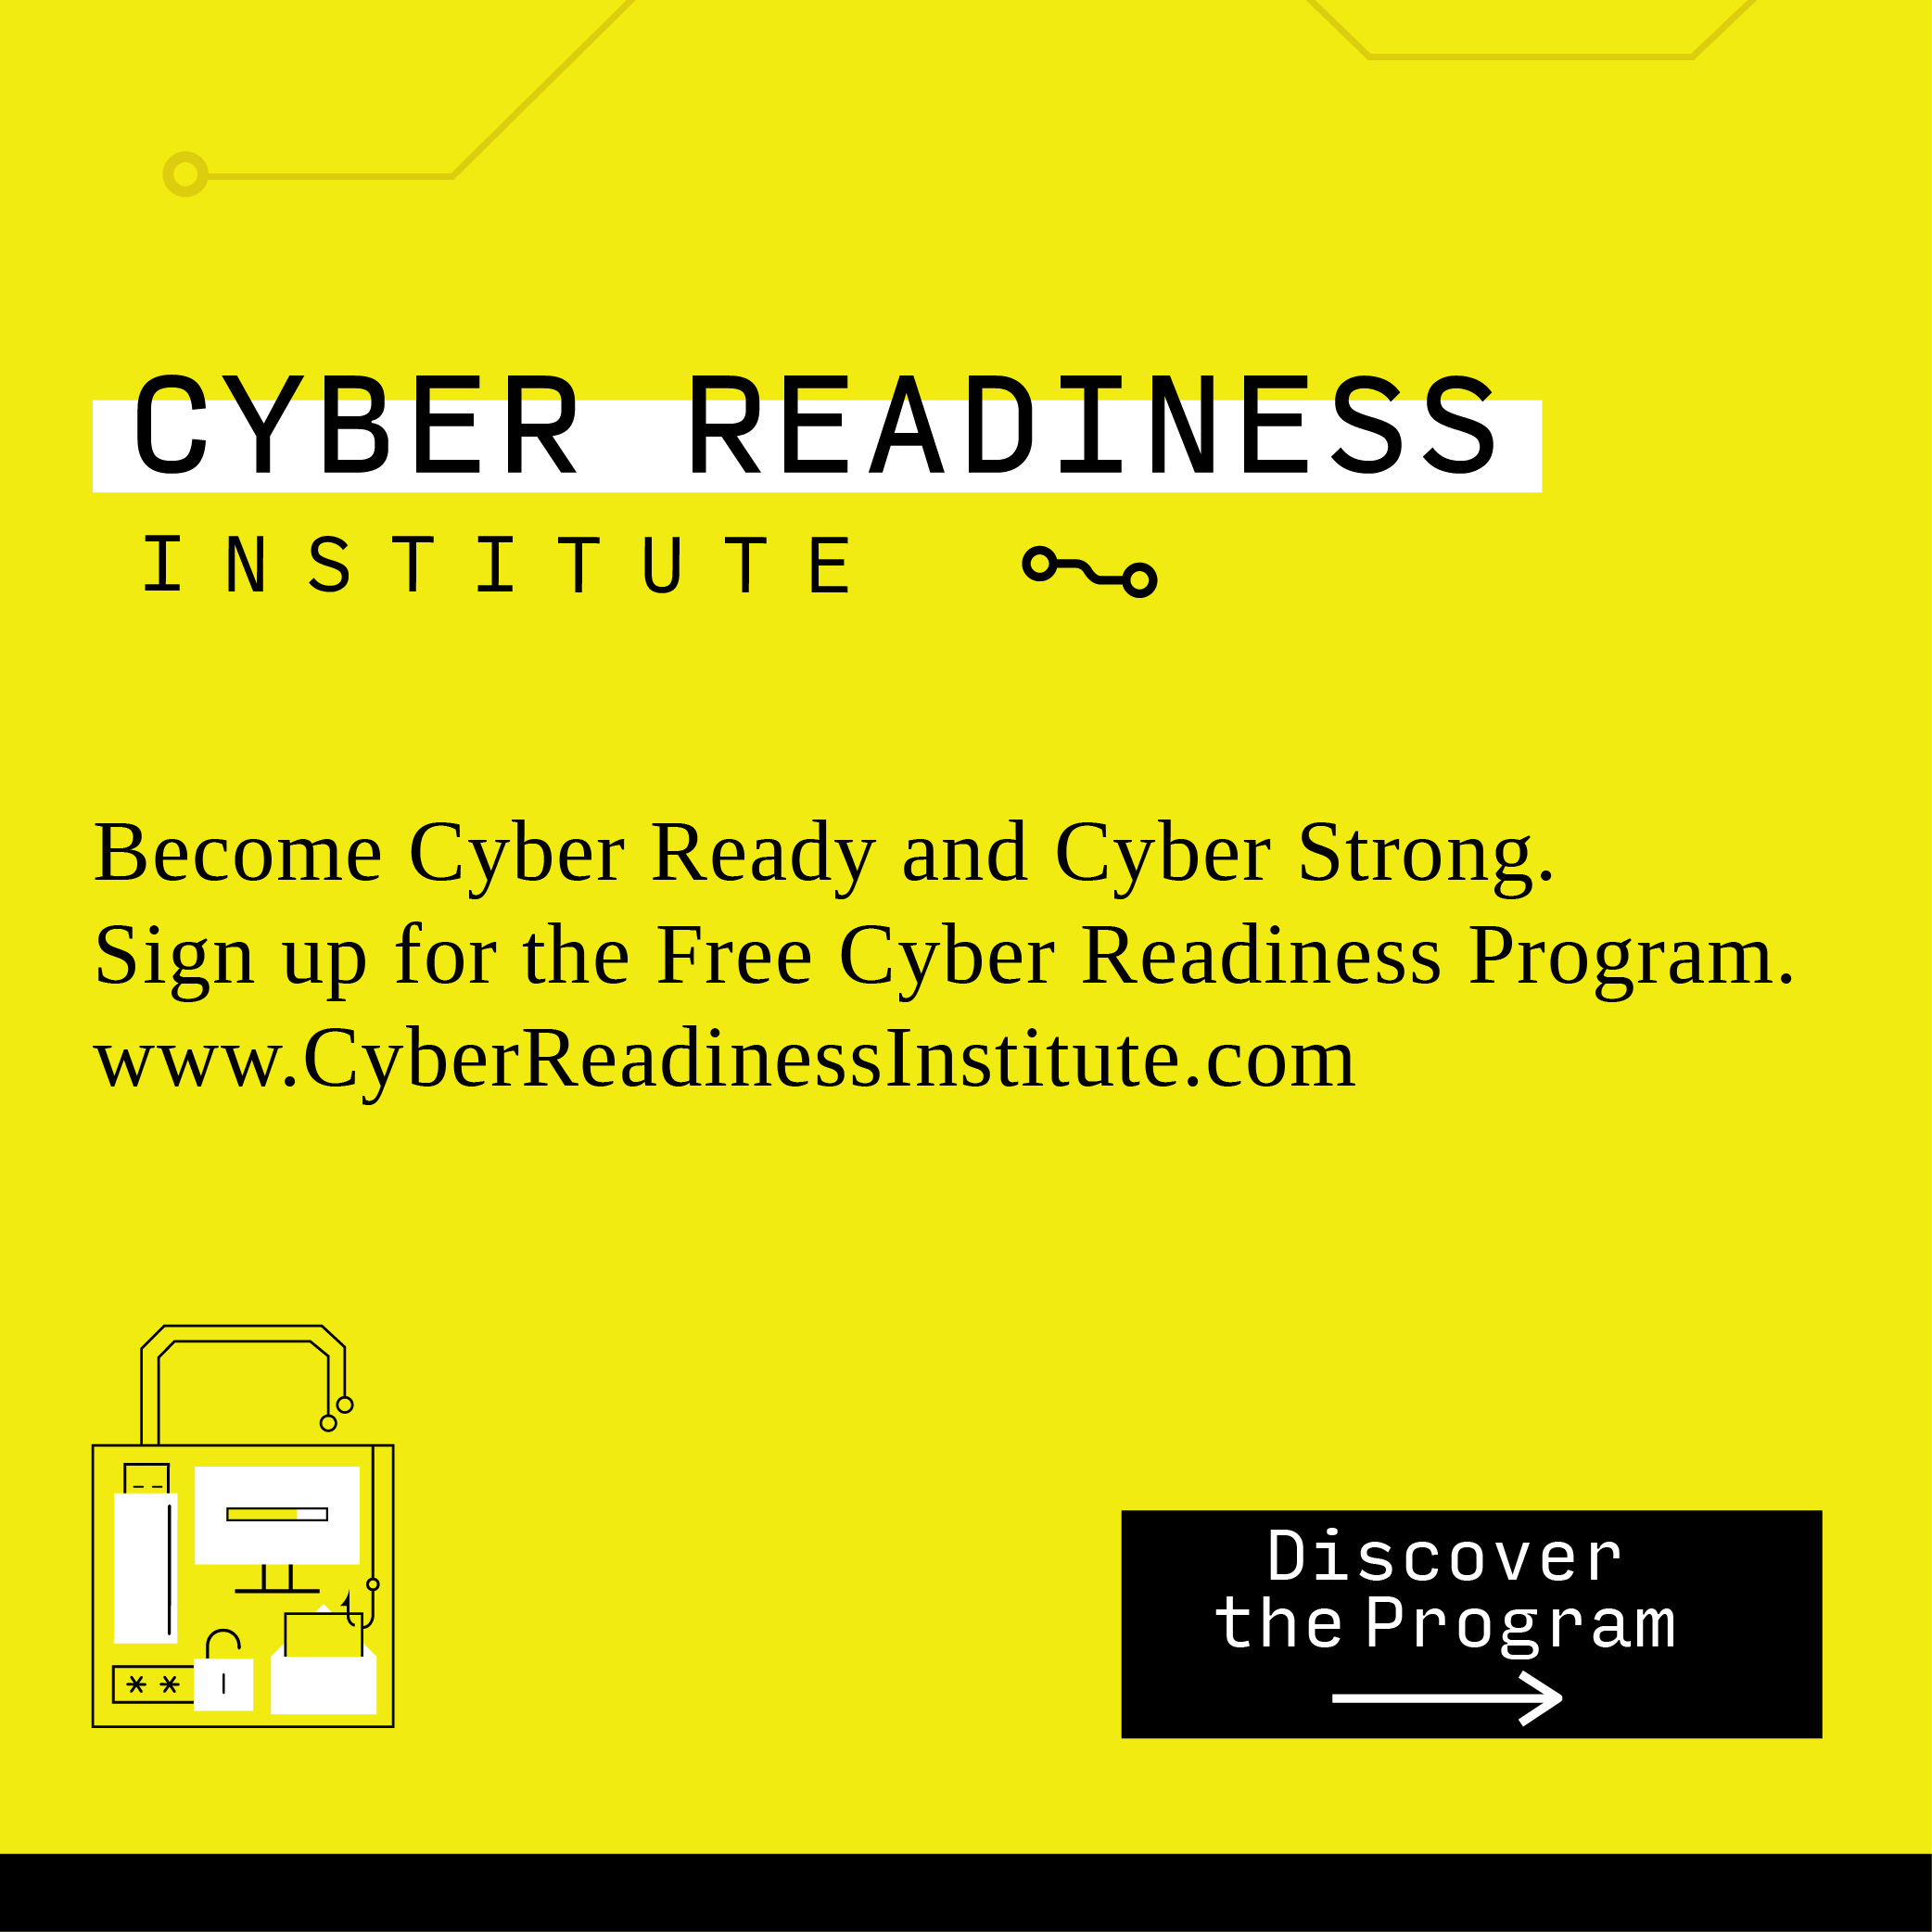 CRI, Cyber Readiness Institute, ICIT, Institute for Critical Infrastructure Technology, Small Business Cybersecurity, Small Medium Business Cybersecurity